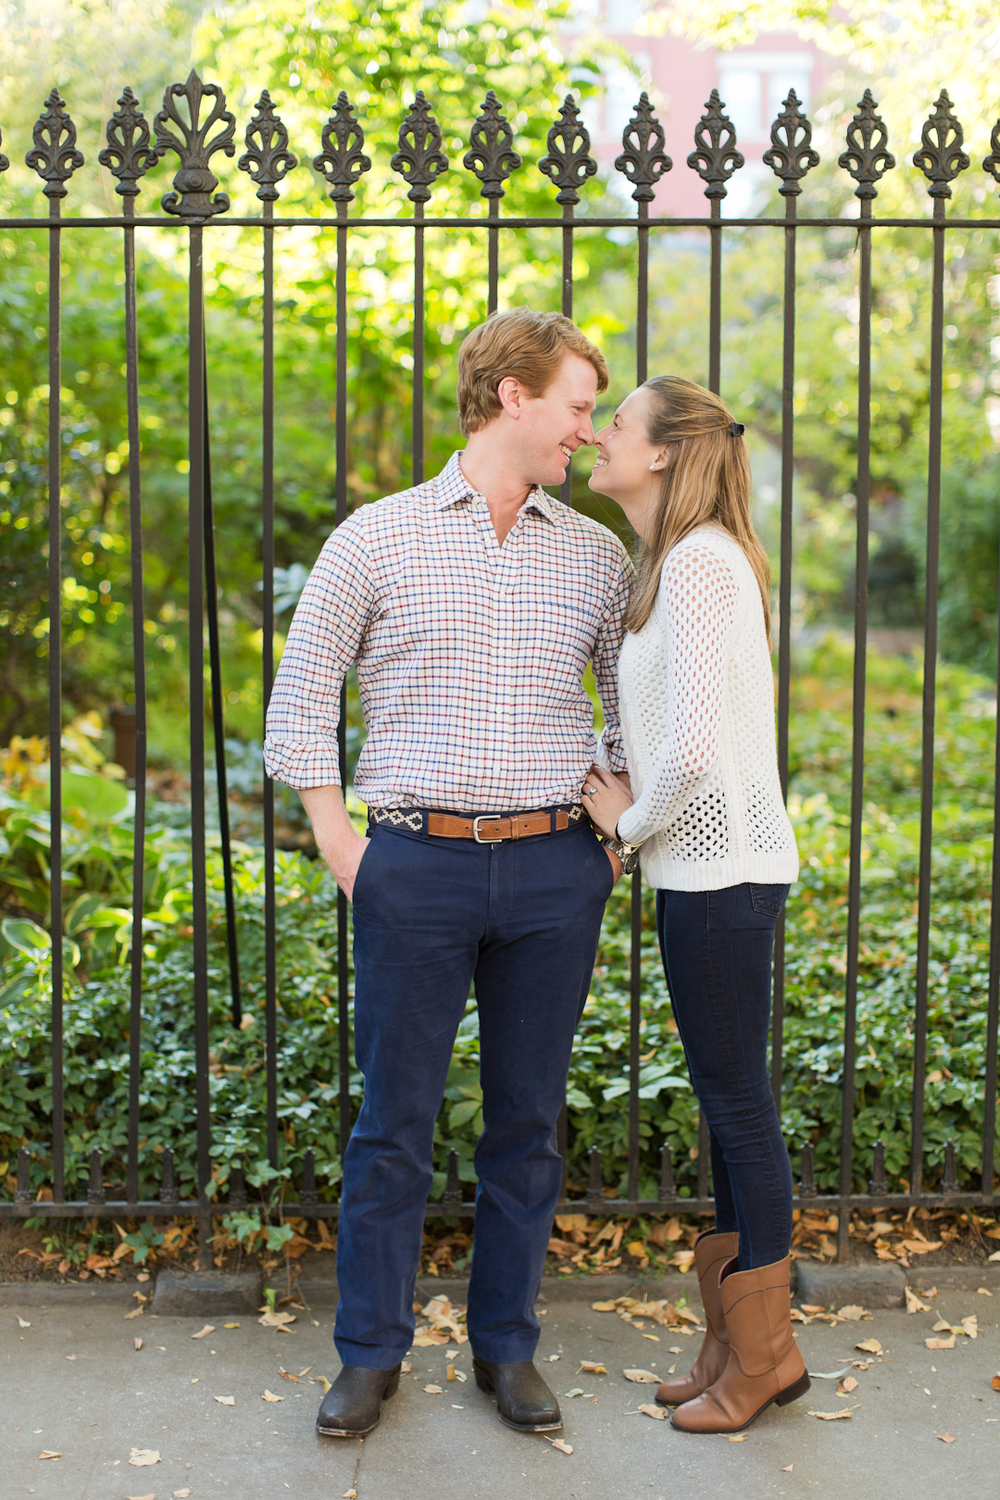 Melissa Kruse Photography - Megan & Tyler West Village Engagement Photos-77.jpg